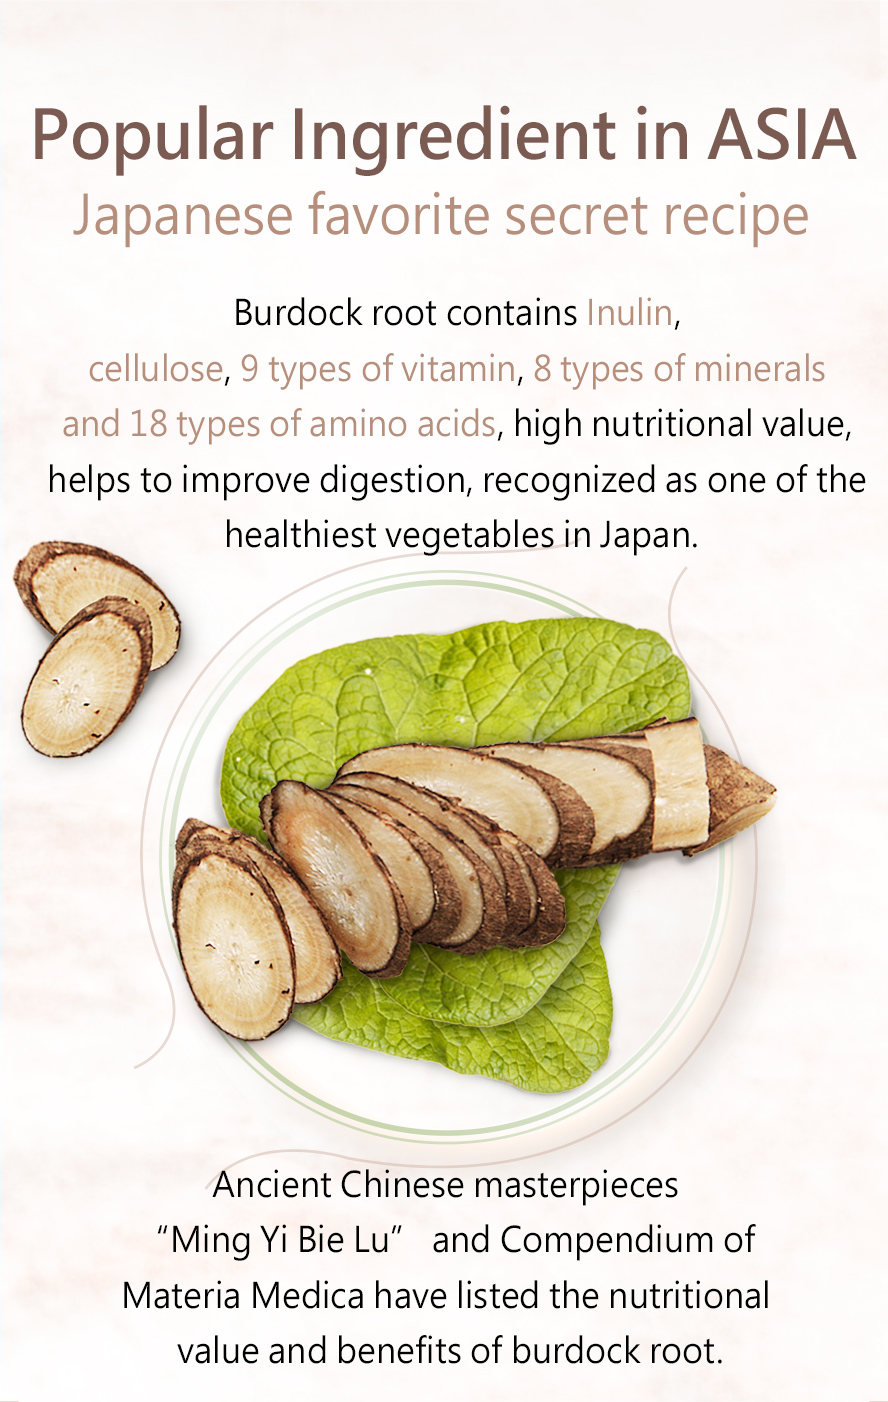 BHK's Burdock Root is sometimes called the Eastern ginseng for its benefits